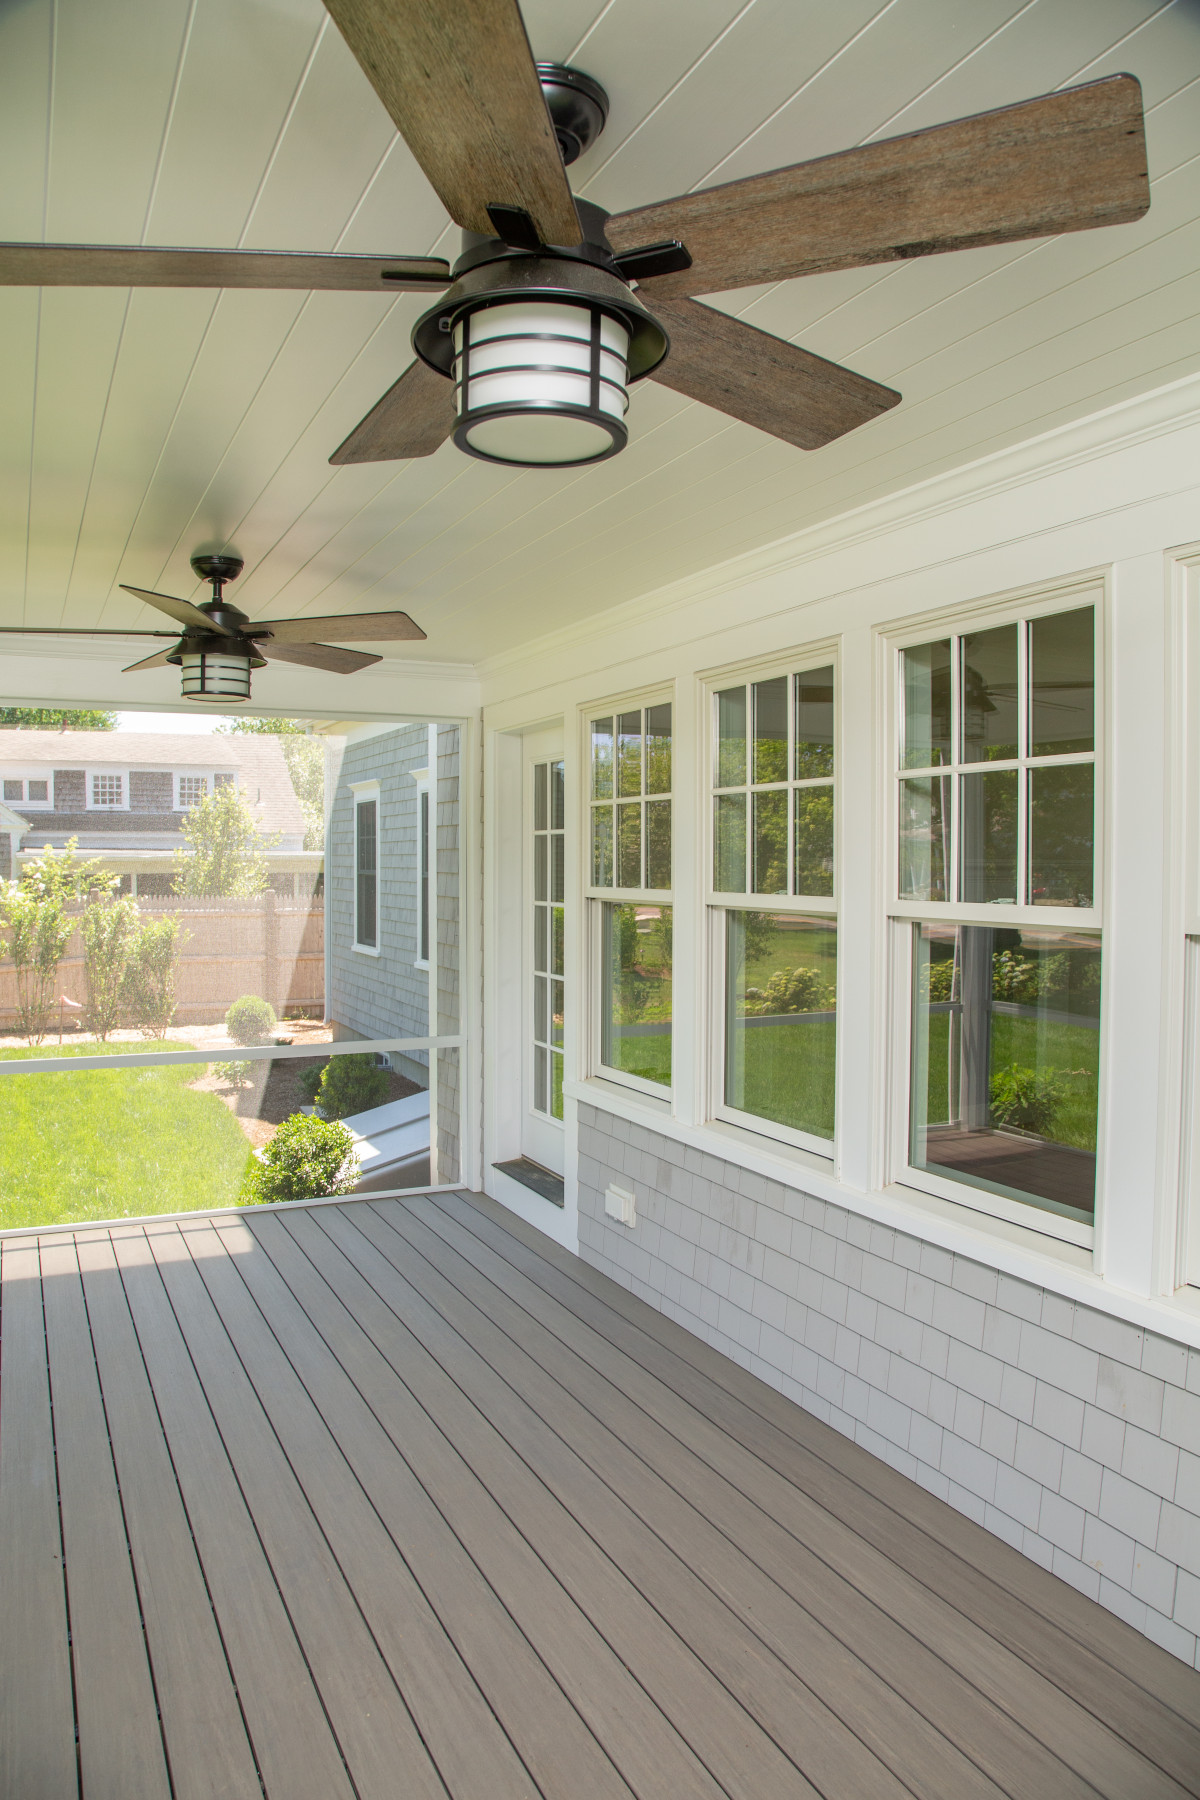 View of porch of new home